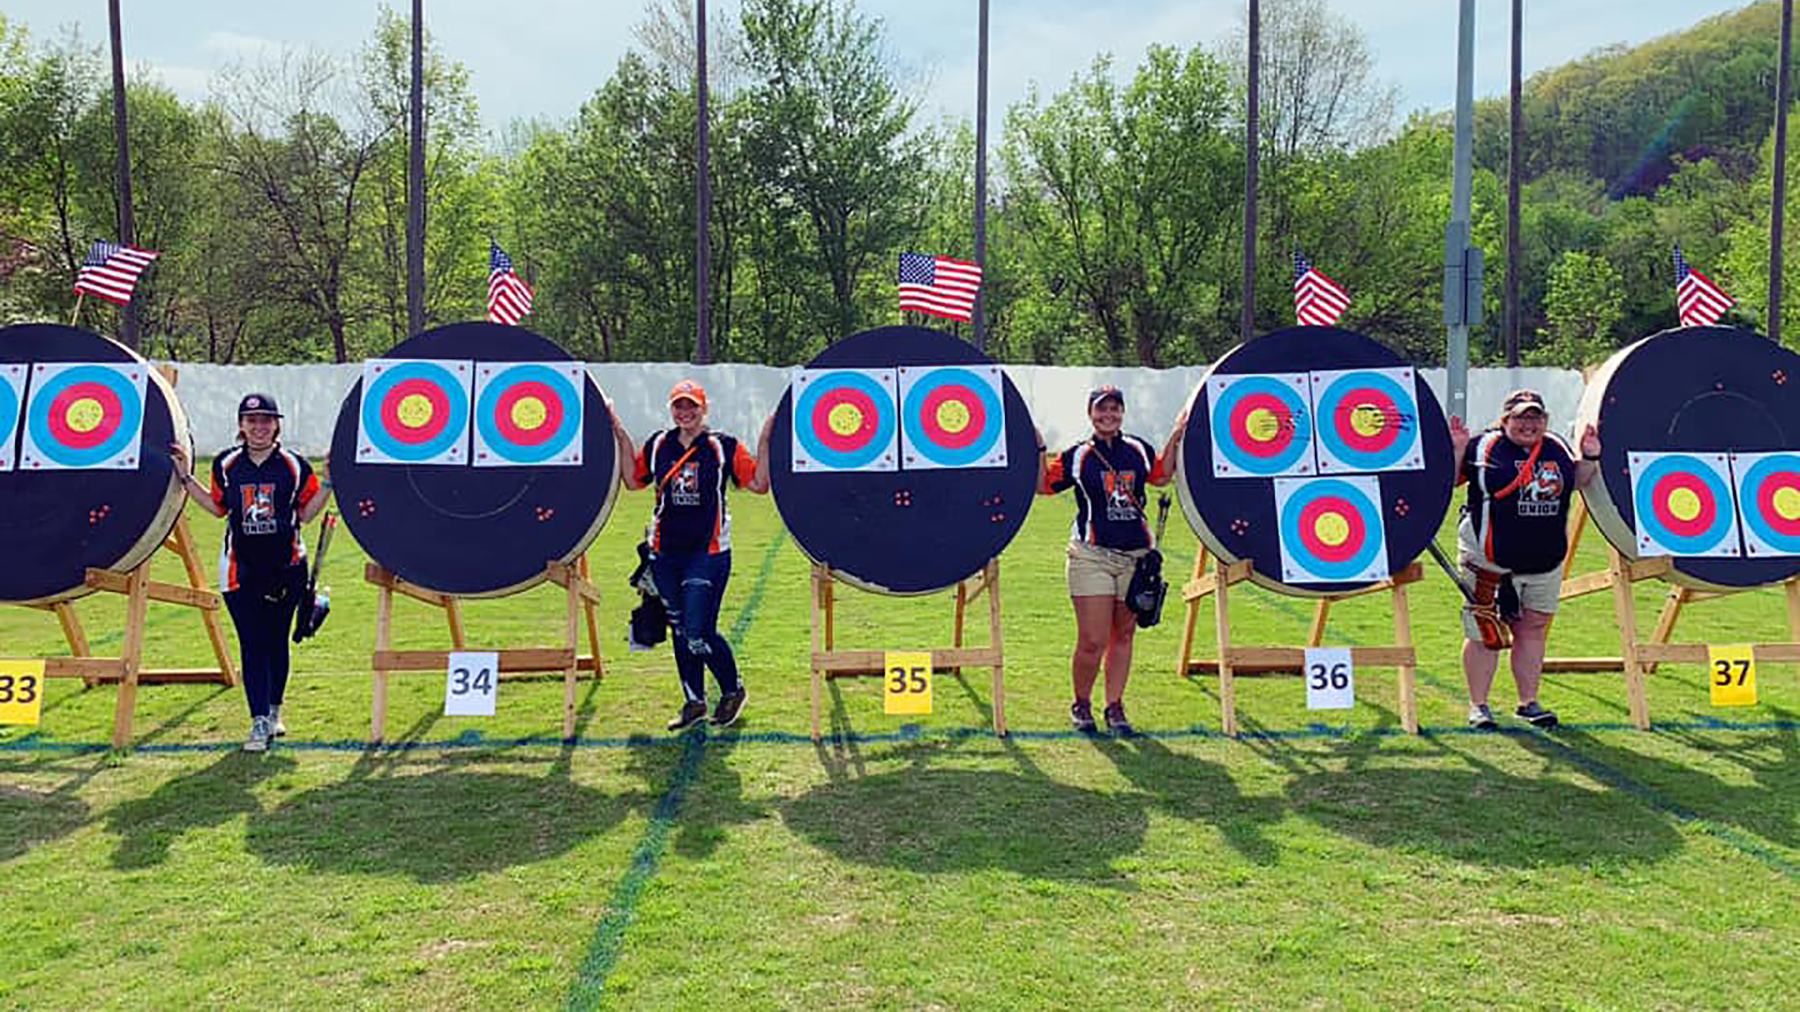 Outdoor Archery Women Png - Union Archery Collects 10 Medals, 8 All-Region Honors   Union ...